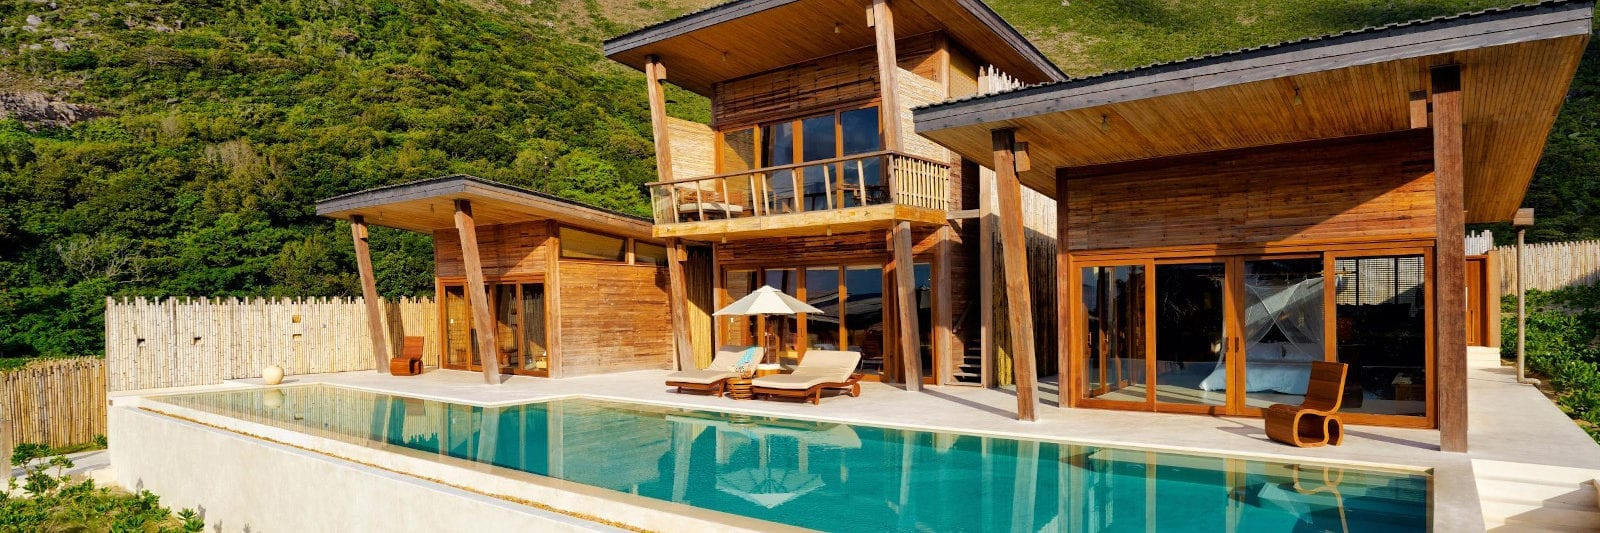 Six Senses Con Dao 5 Star Luxury Hotel